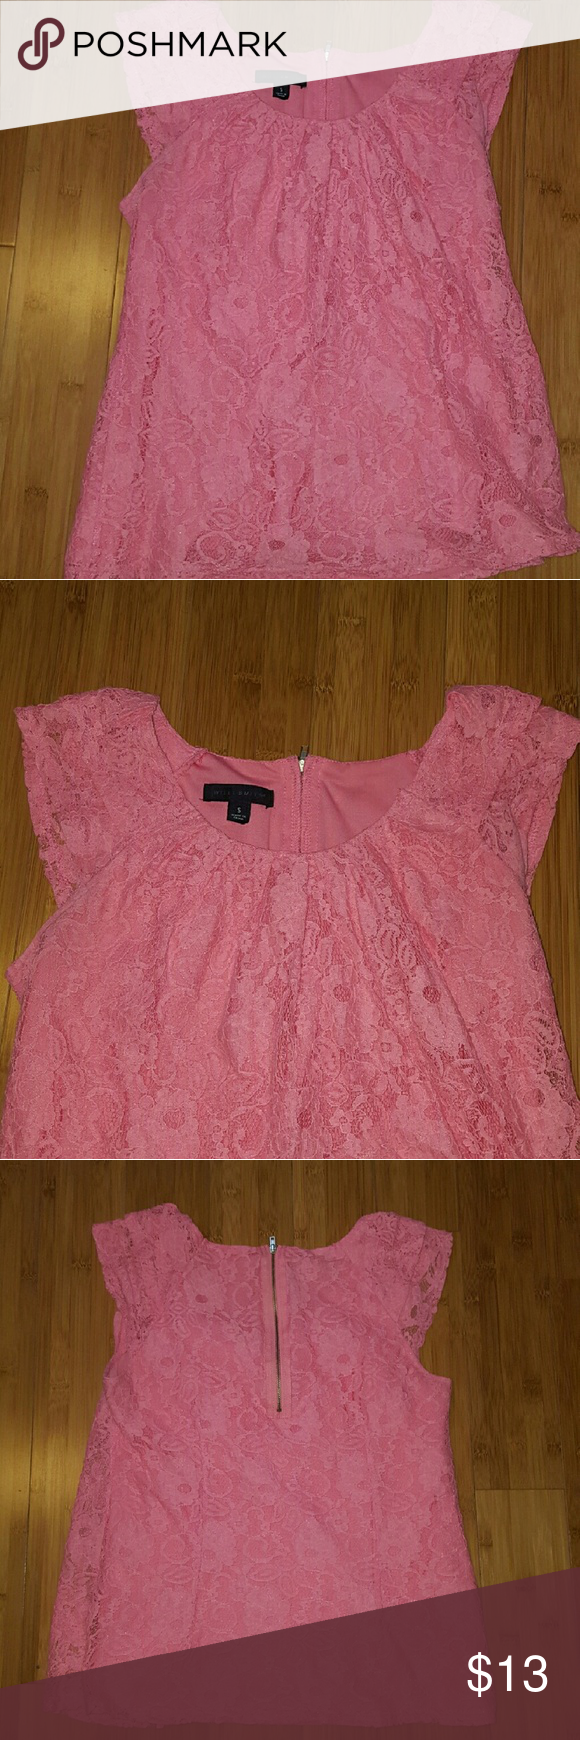 Pink lace top! So cute!! Good condition top! Look at the shoulders not sure what design thats called but it sits on the shoulder. Also its a scoop neck. No model sorry! It a normal length for a top, super cute for the spring time! True to size.  Smoke free home!  Will hand wash before shipping since it's been in my closet.   A couple stringys that can be cut off otherwise the lace seems great as far as i can see!   Moving so i need to sell! Willi Smith Tops Blouses